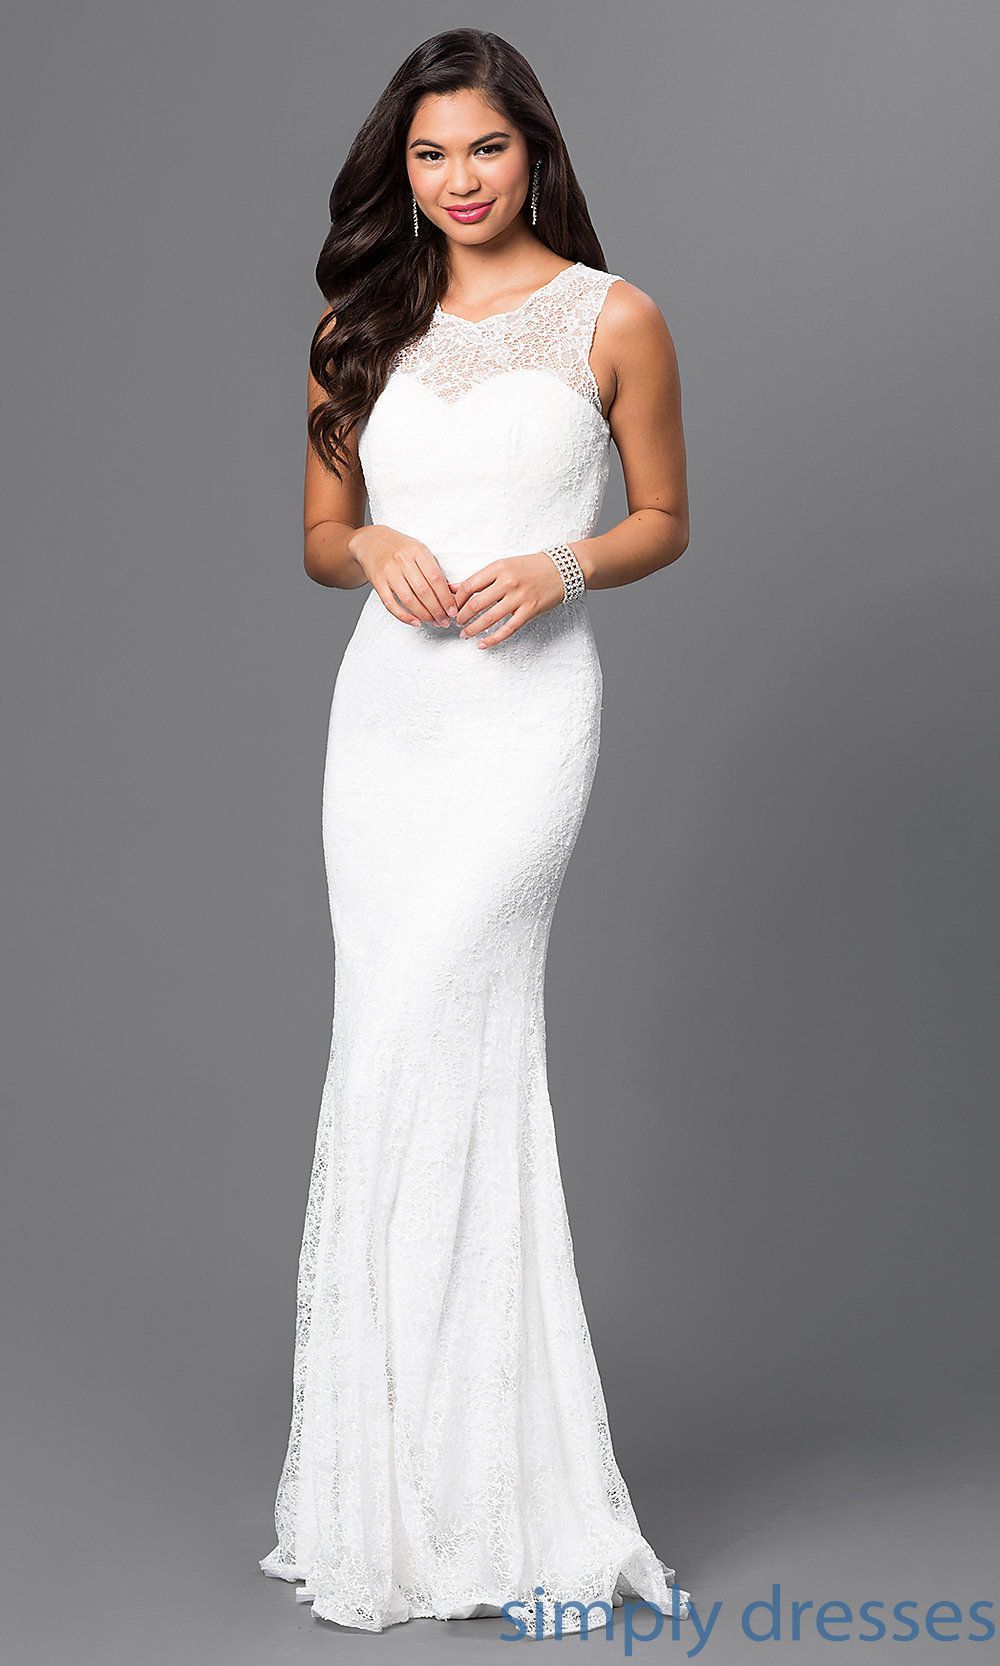 Floor-Length Sequin-Lace Formal Gown | Formal gowns, Military ball ...